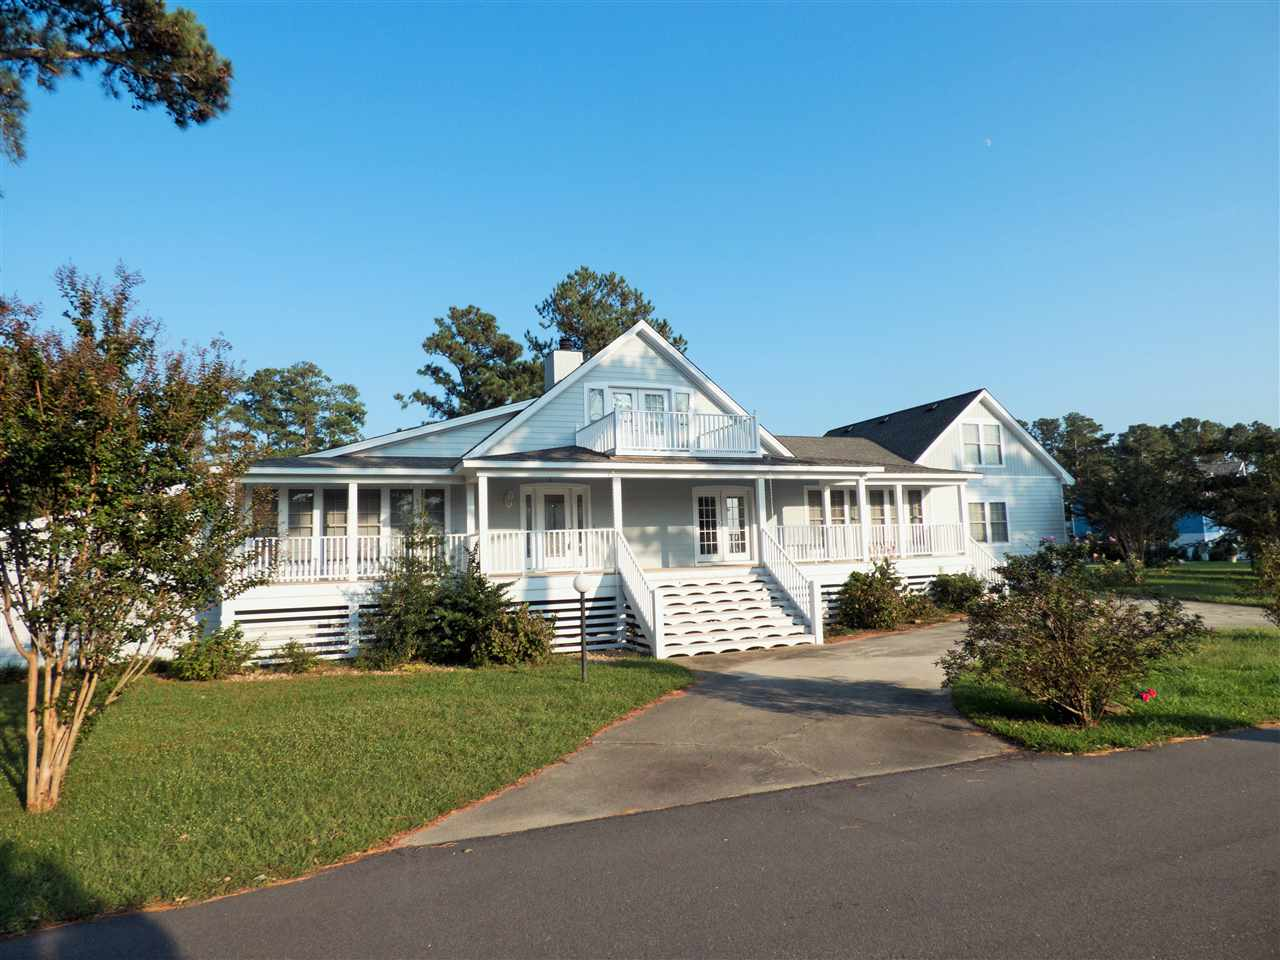 114 Bartow Drive, Manteo, NC 27954, 4 Bedrooms Bedrooms, ,3 BathroomsBathrooms,Residential,For sale,Bartow Drive,95625